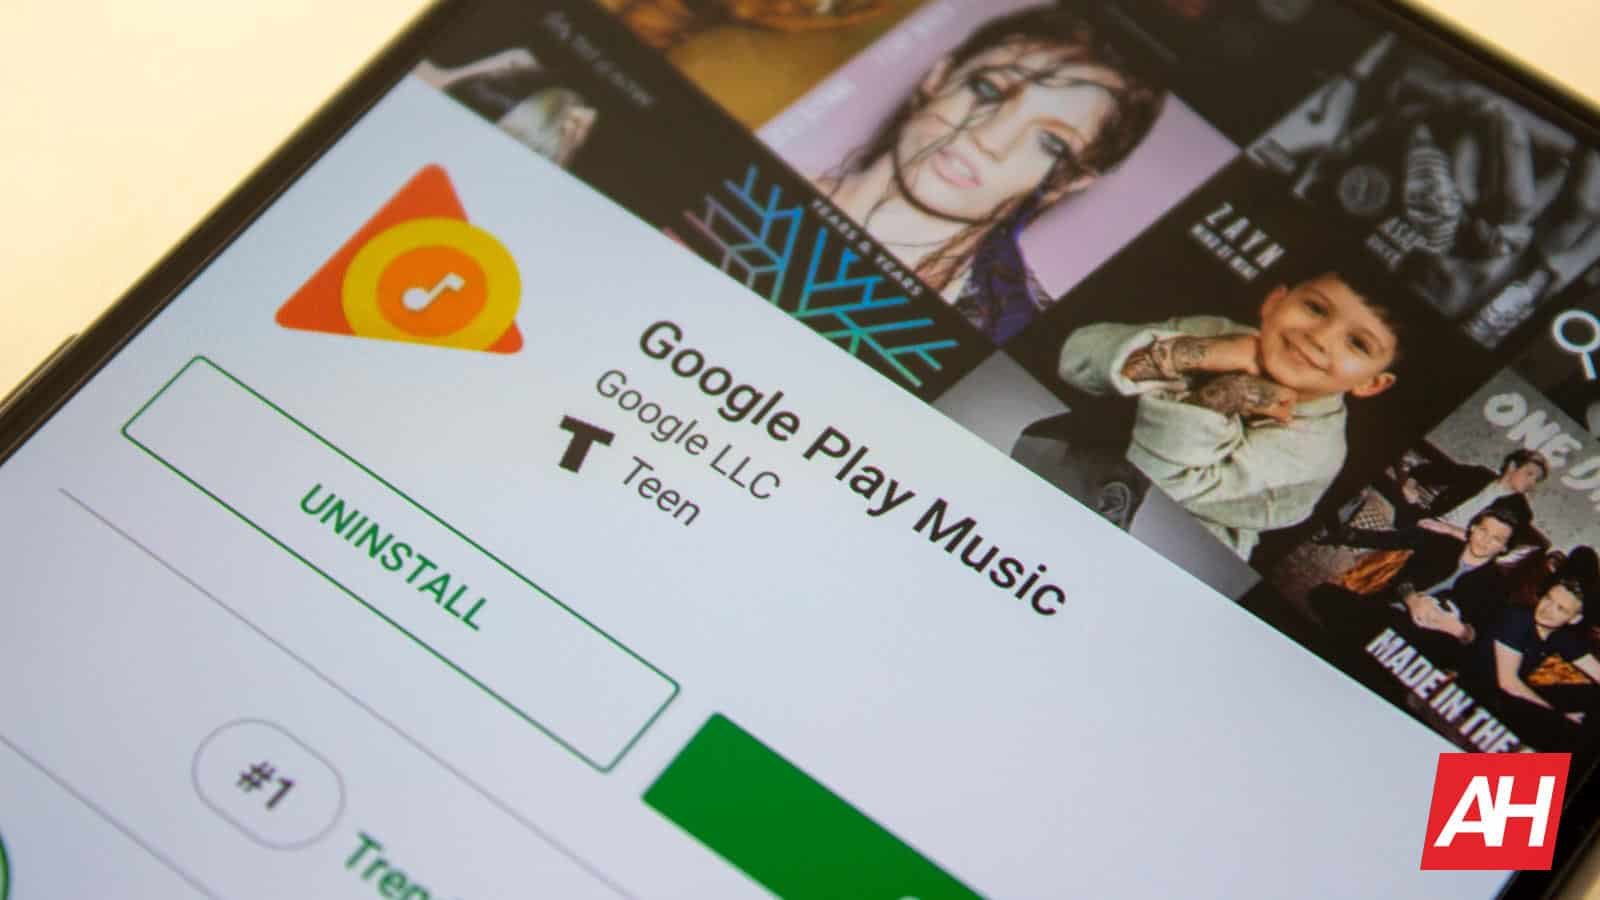 Google Play Music AH NS 08